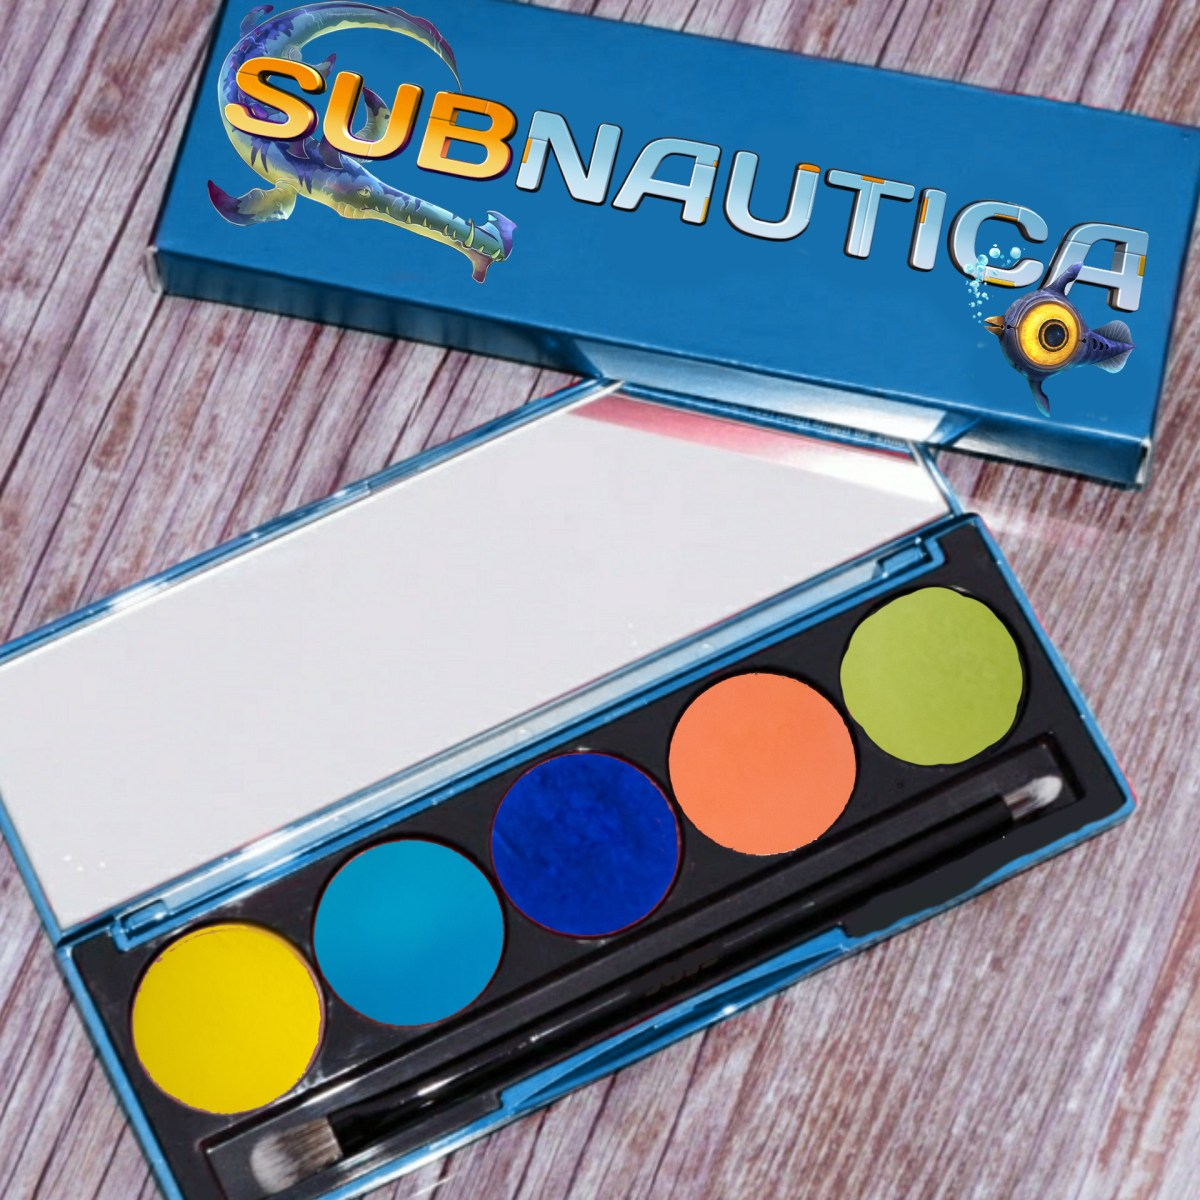 Making My Own Dream Palette Inspired by Subnautica - Mae Polzine